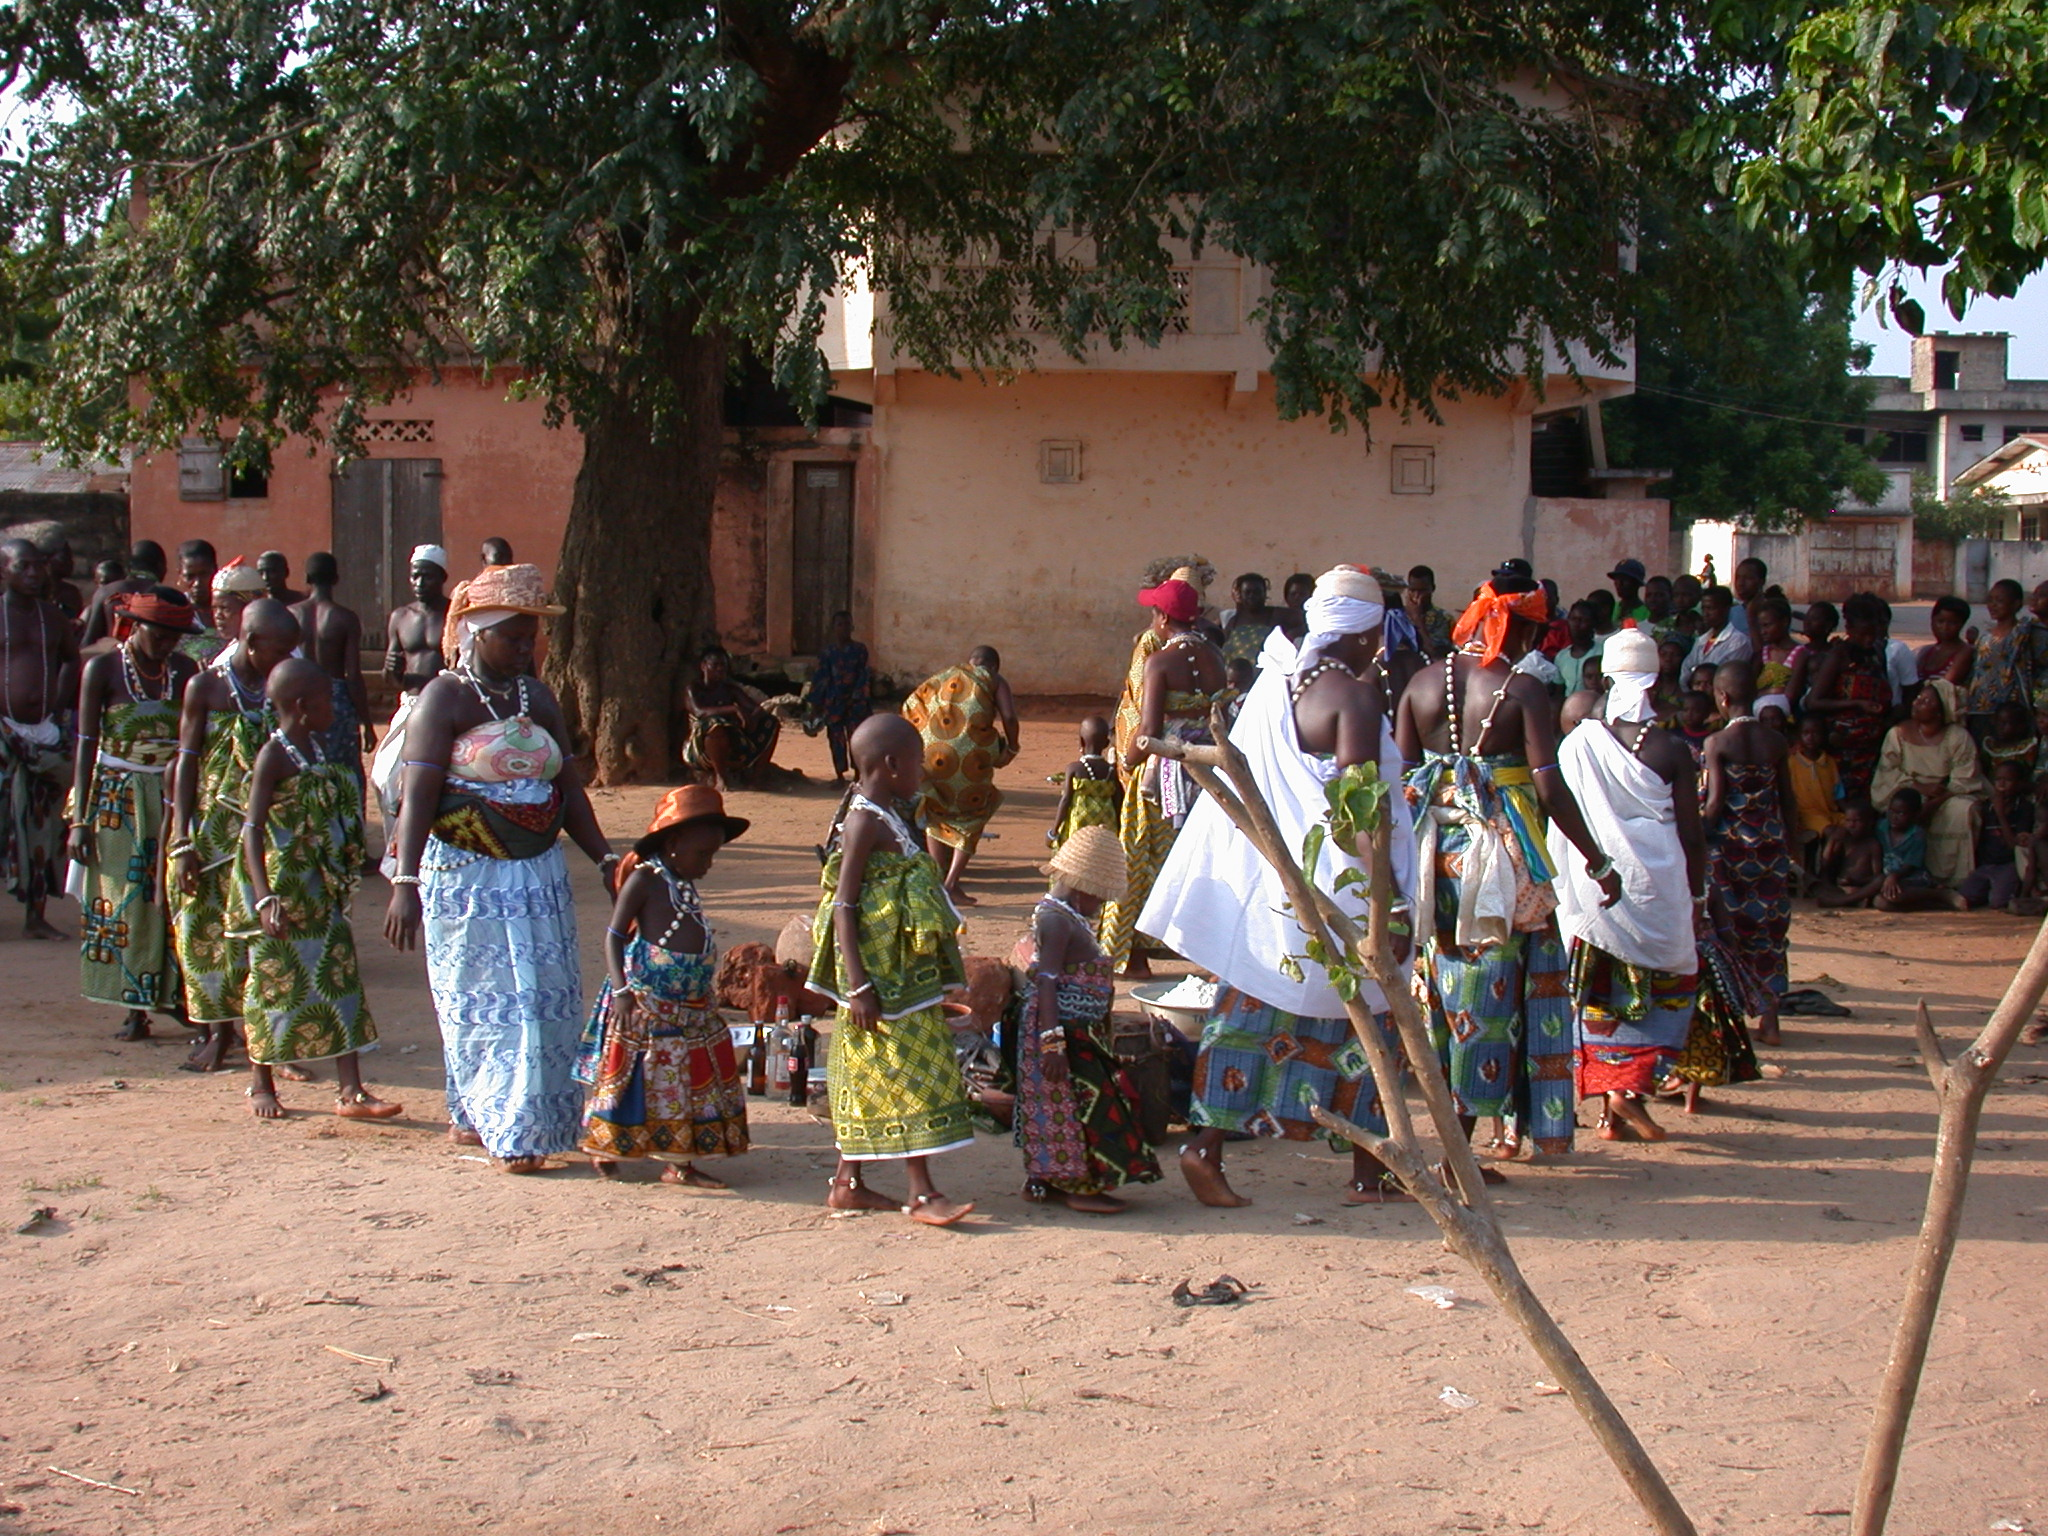 Procession of Initiatives, Vodun Ritual, Ouidah, Benin